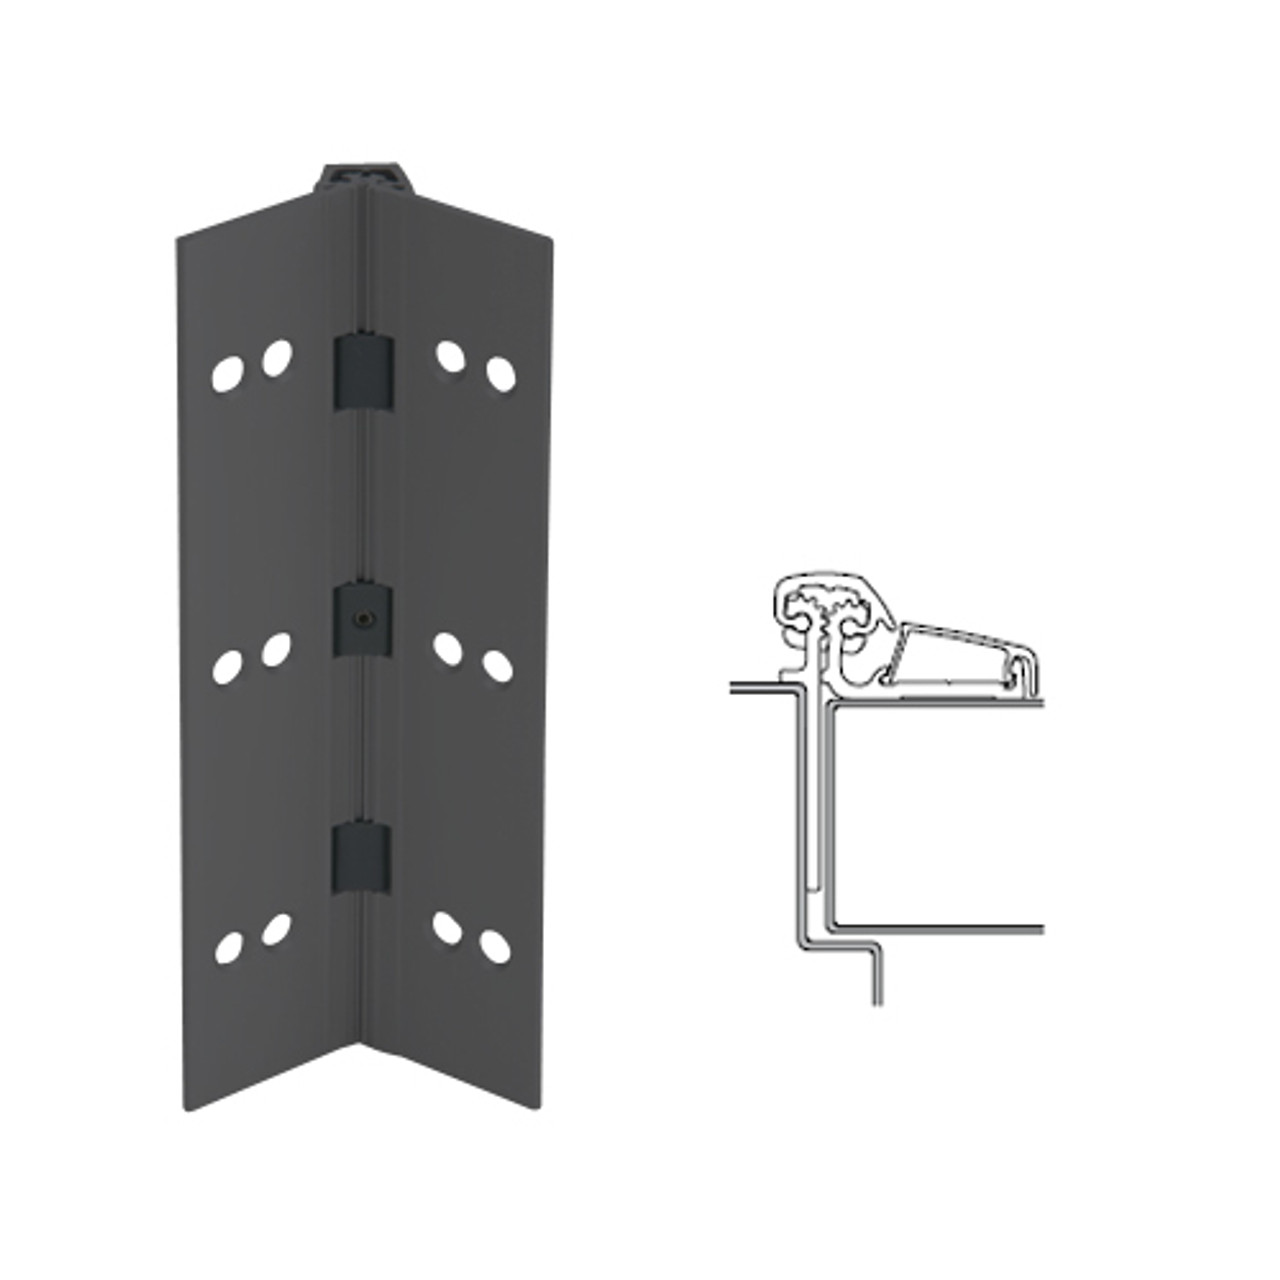 053XY-315AN-83-TF IVES Adjustable Half Surface Continuous Geared Hinges with Thread Forming Screws in Anodized Black